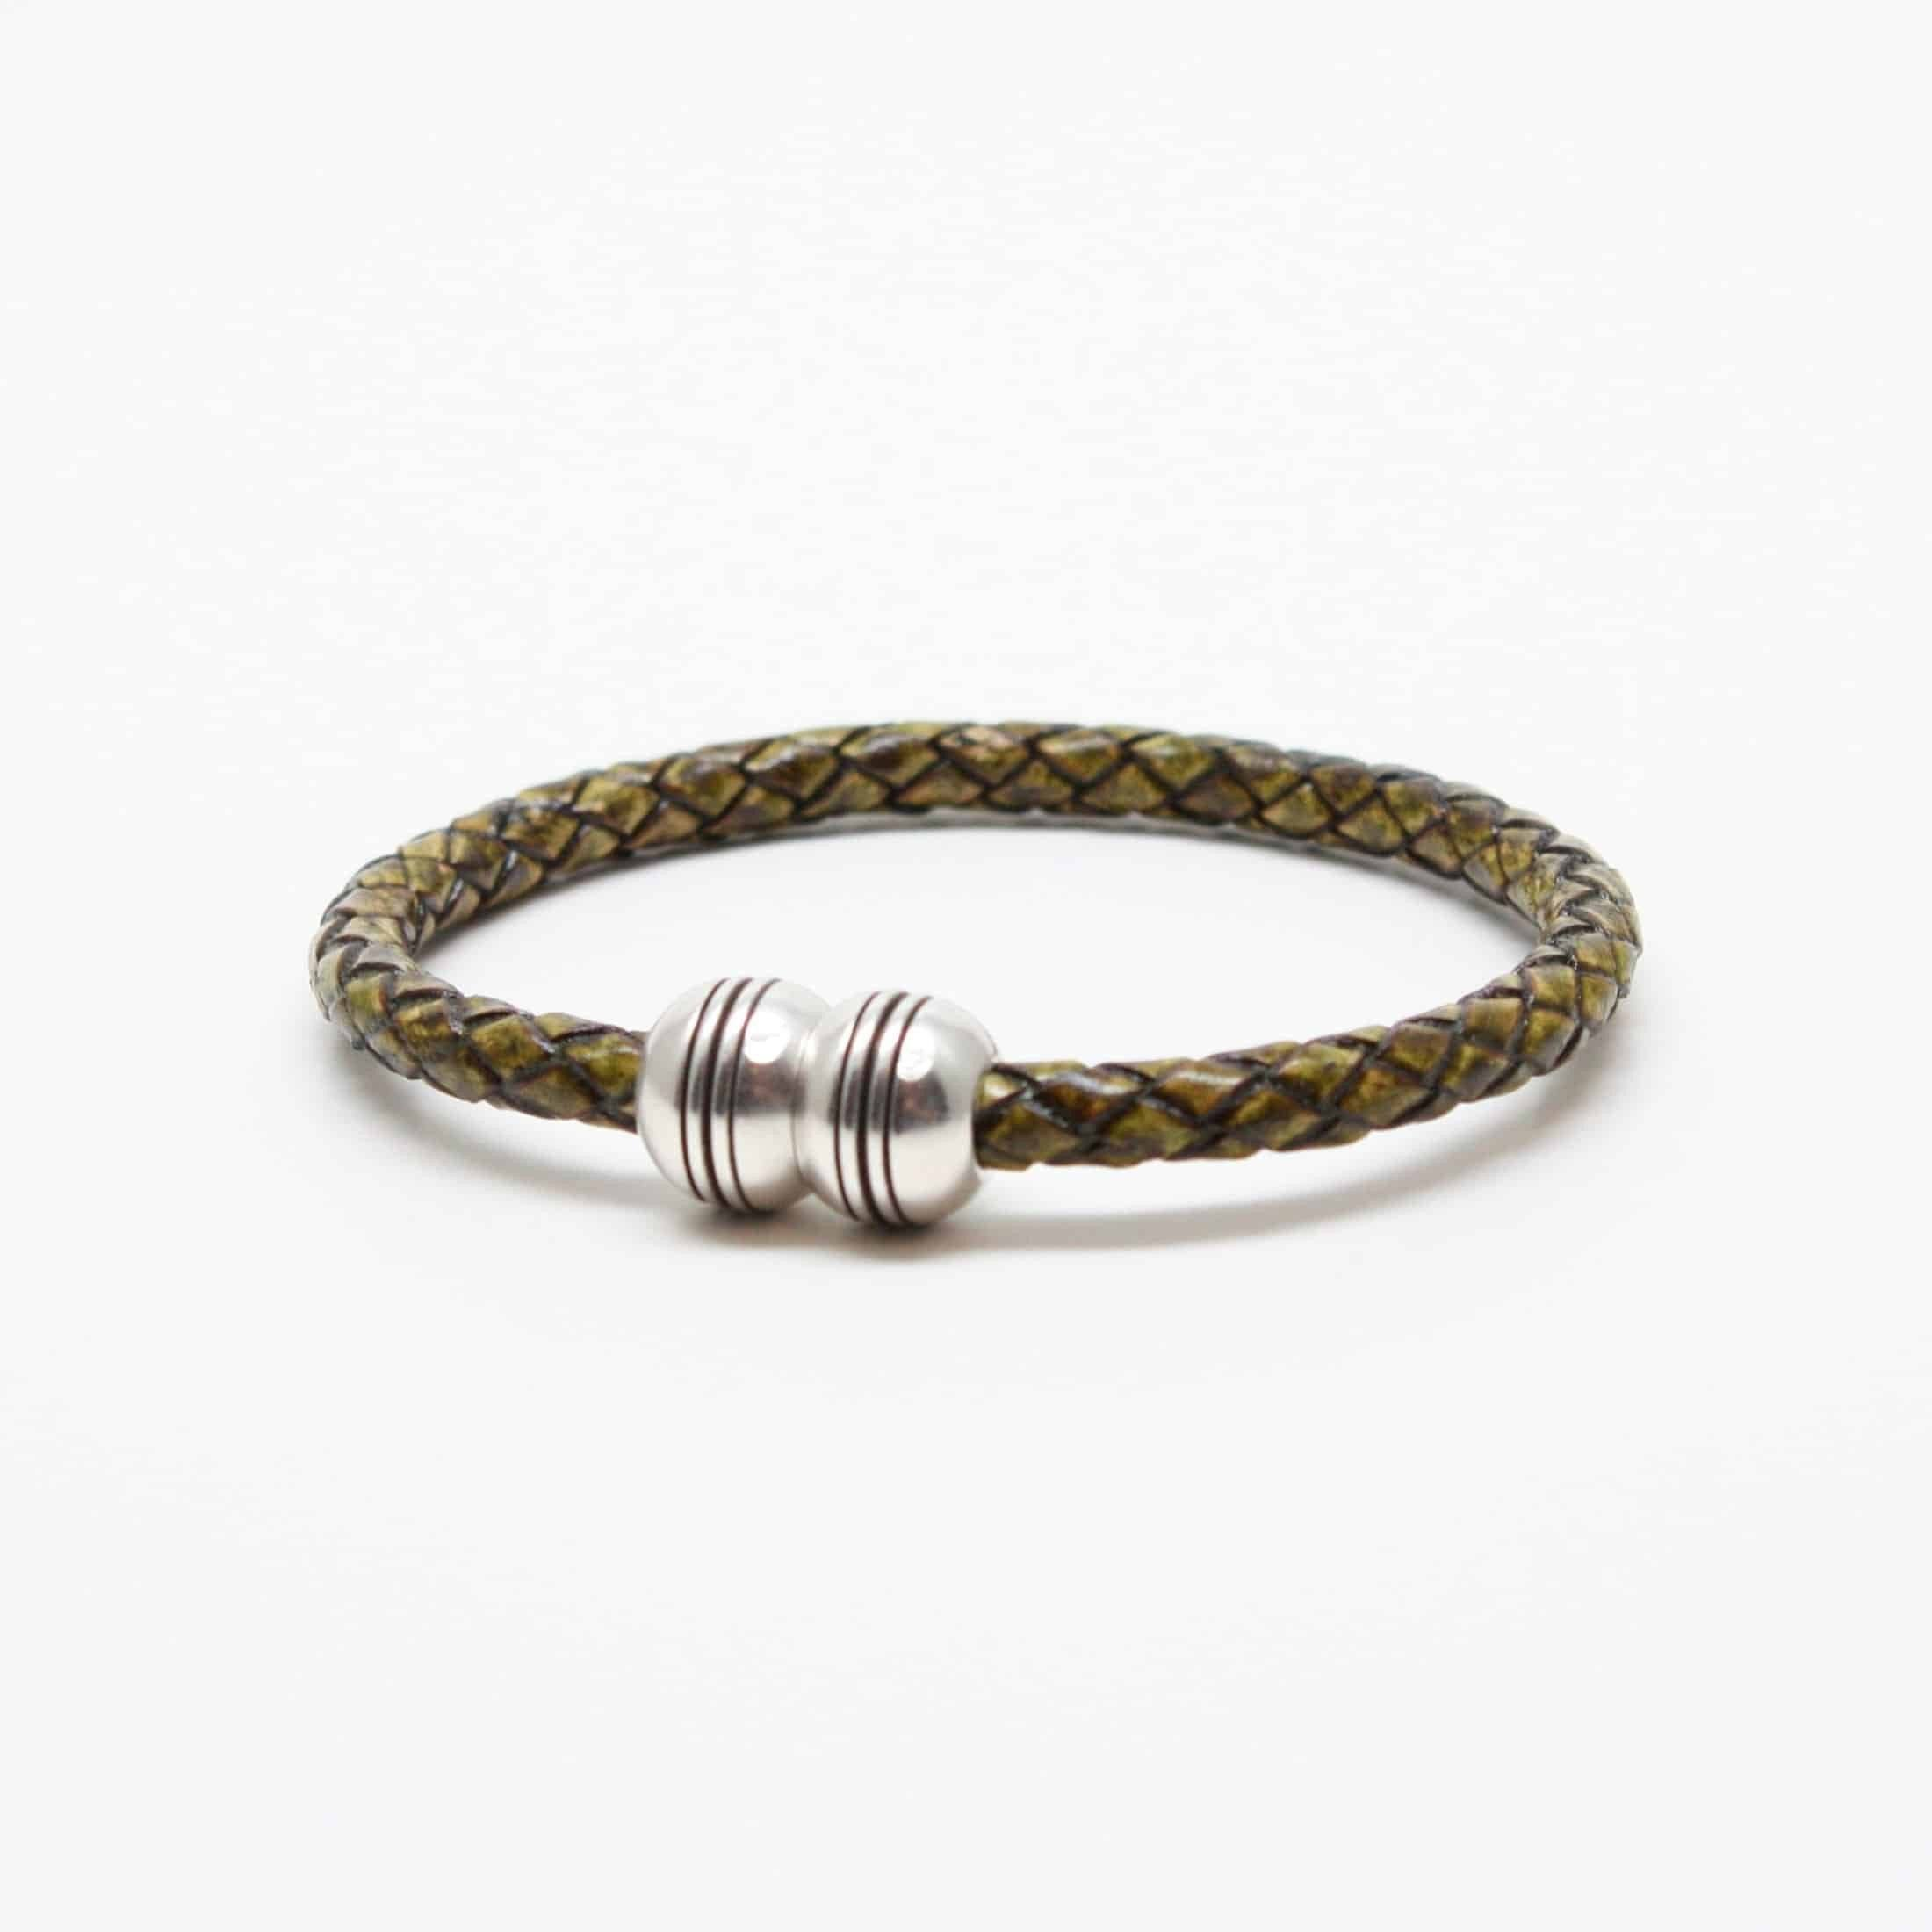 Braided Leather Hemisphere Bracelet - Olive,BRACELET,Gent Row, | GentRow.com